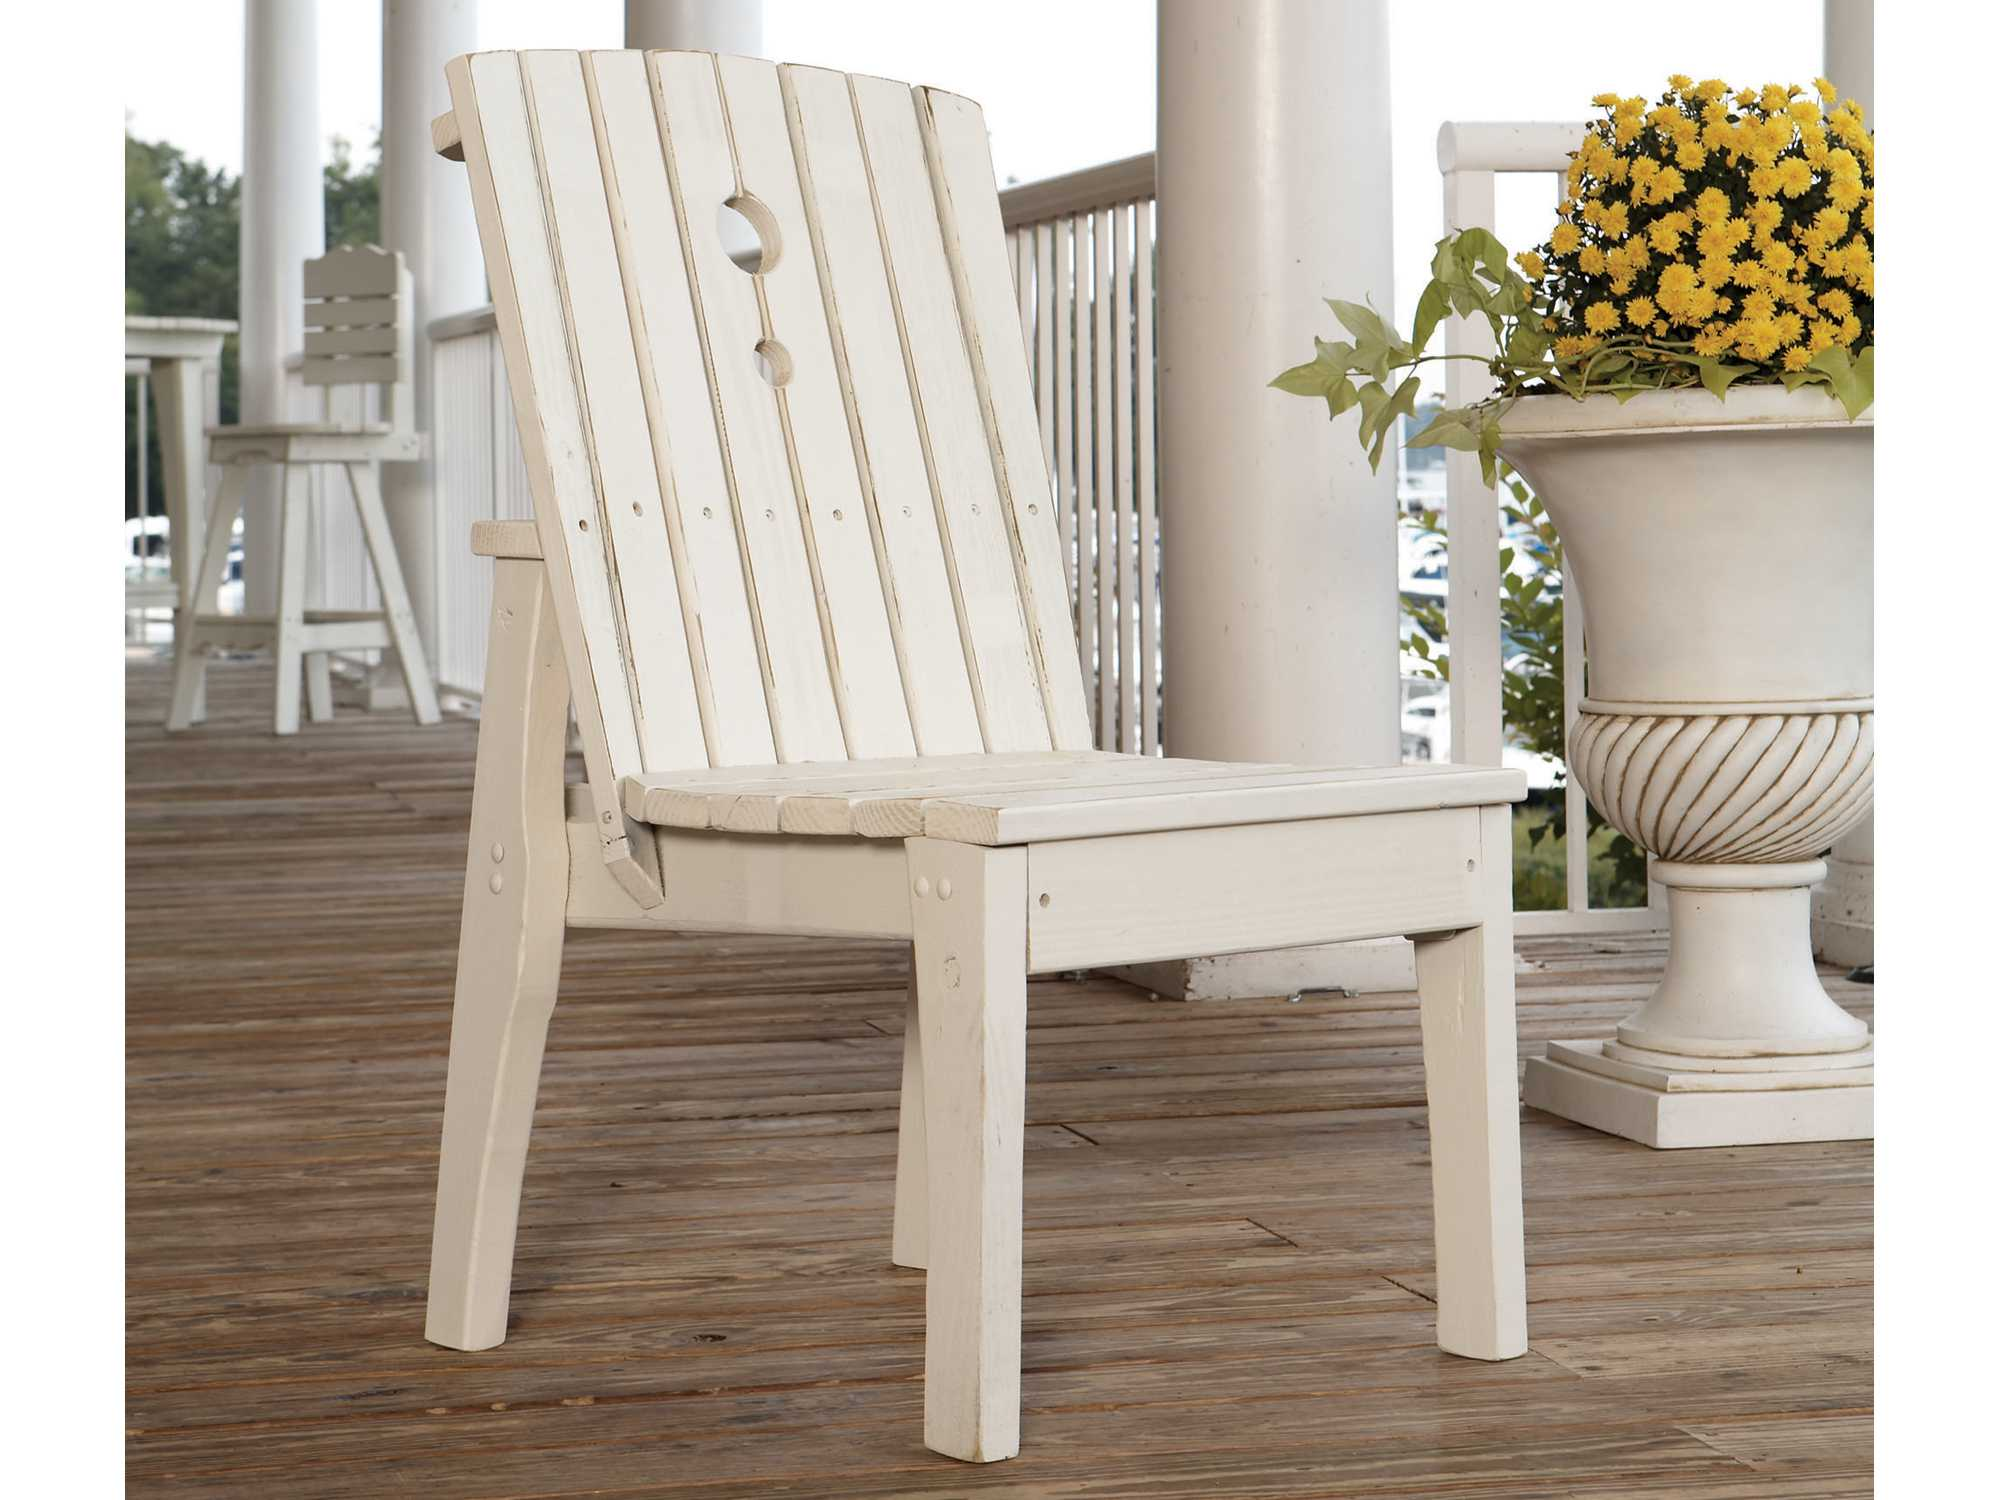 Uwharrie Chair Behren Wood Adirondack Dining Side Chair  B096